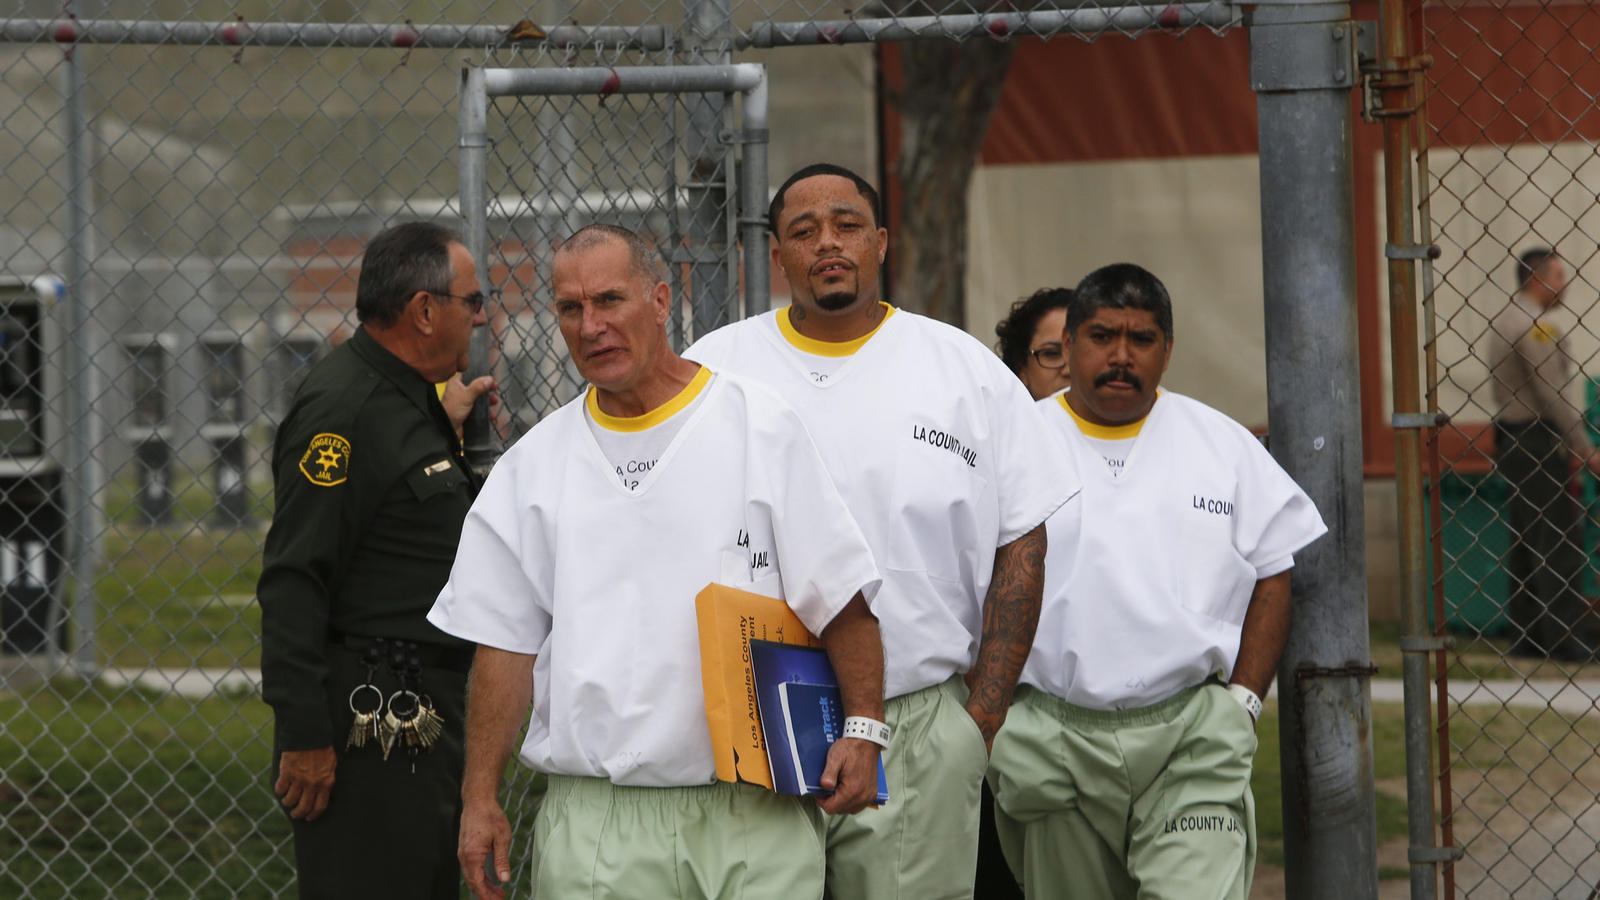 L.A. County Jail launches... -